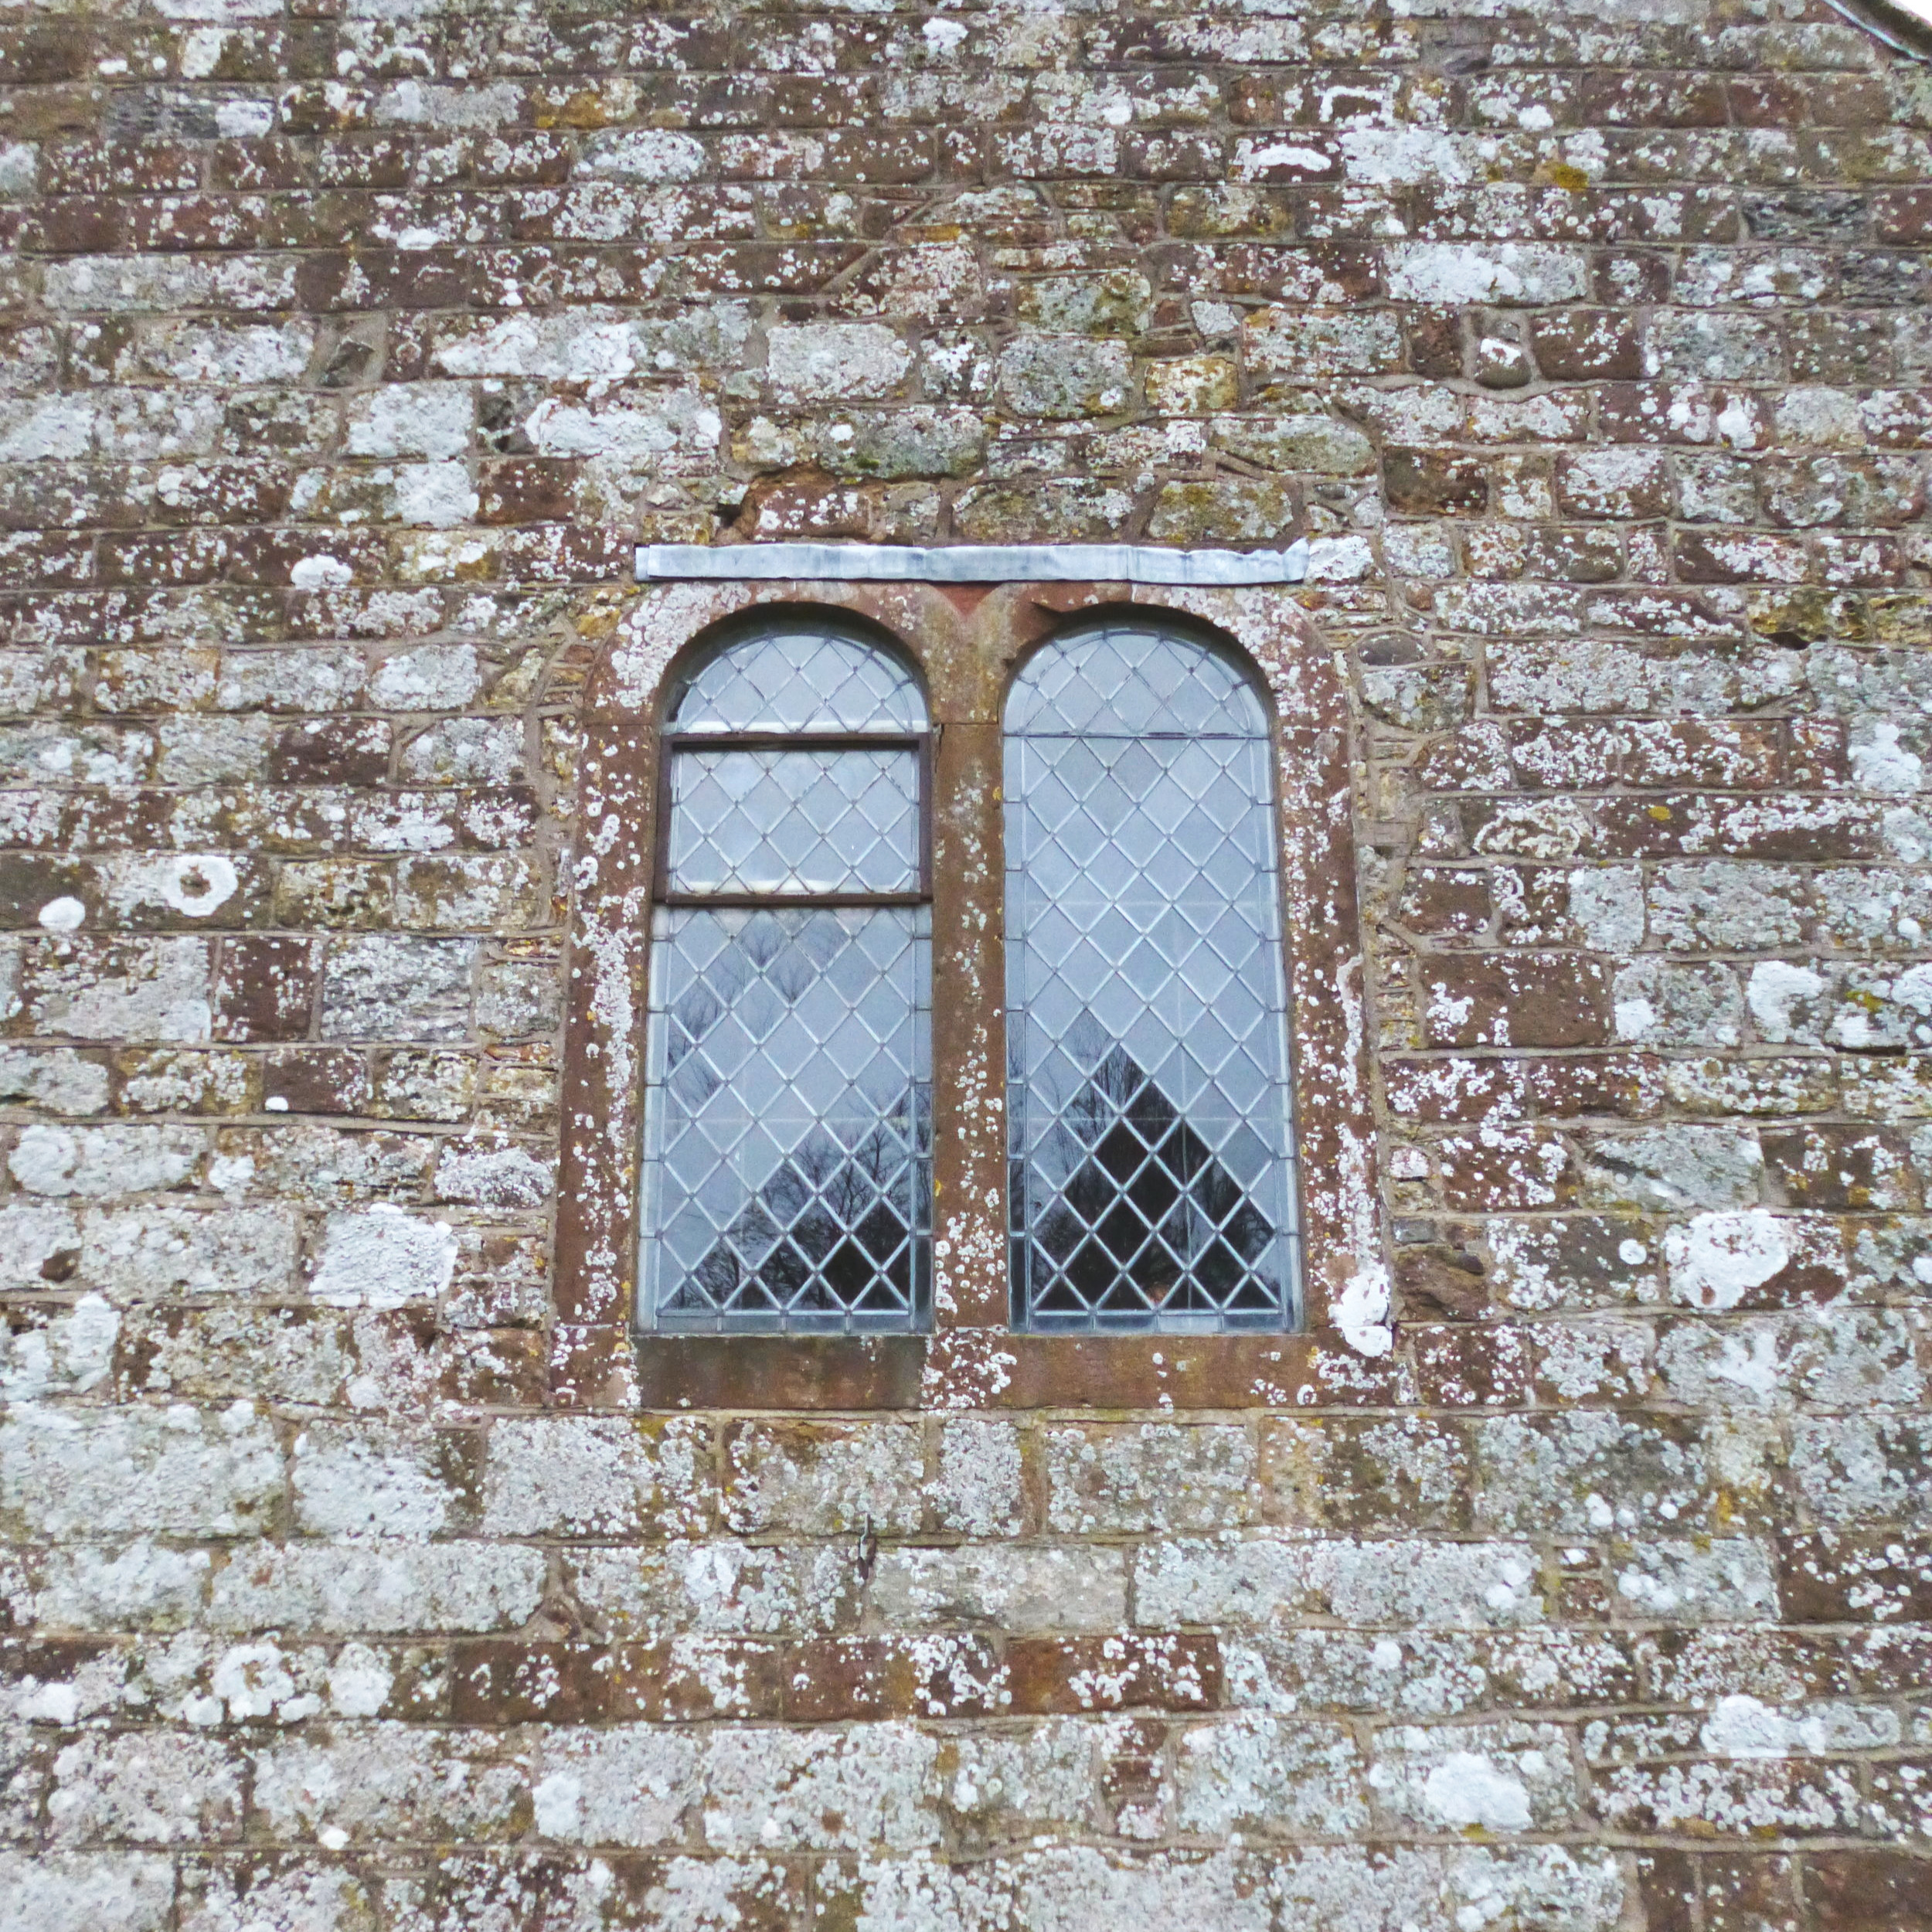 The west window was badly bowed and the iron casement was rusted and leaking